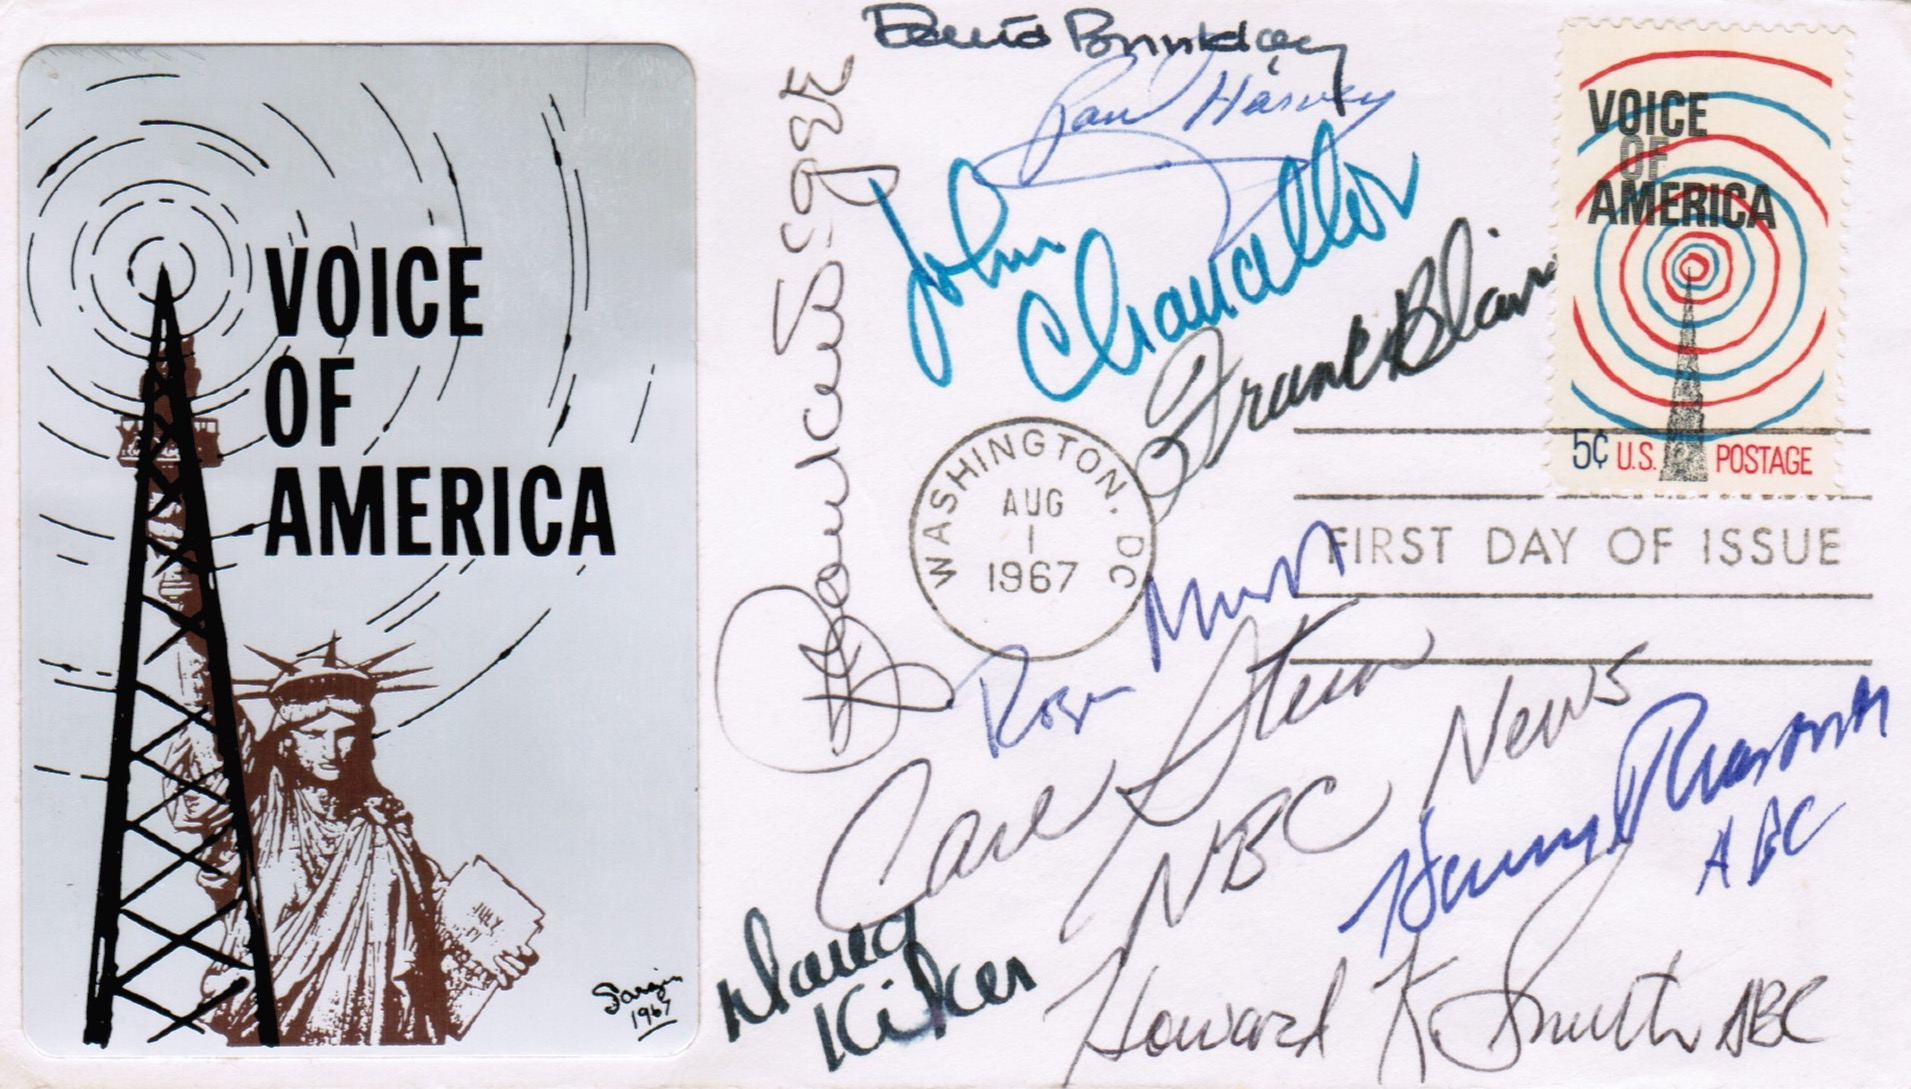 VOA 1967 First Day of Issue Cover with U.S. Reporters Autographs